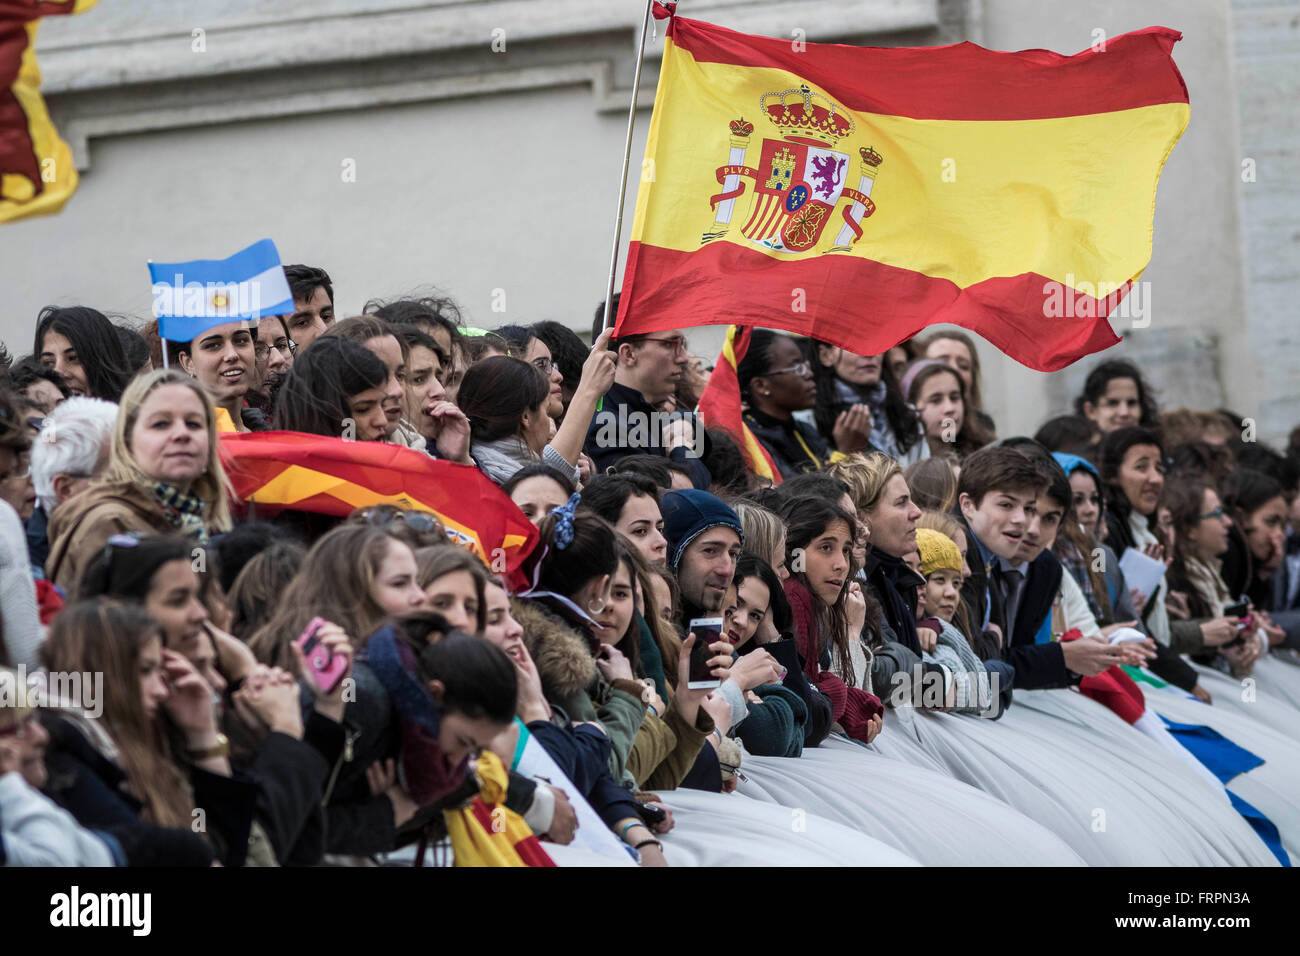 Vatican City, Vatican. 23rd Mar, 2016. Spanish pilgrims wave a flag and shout slogans during a Weekly General Audience - Stock Image